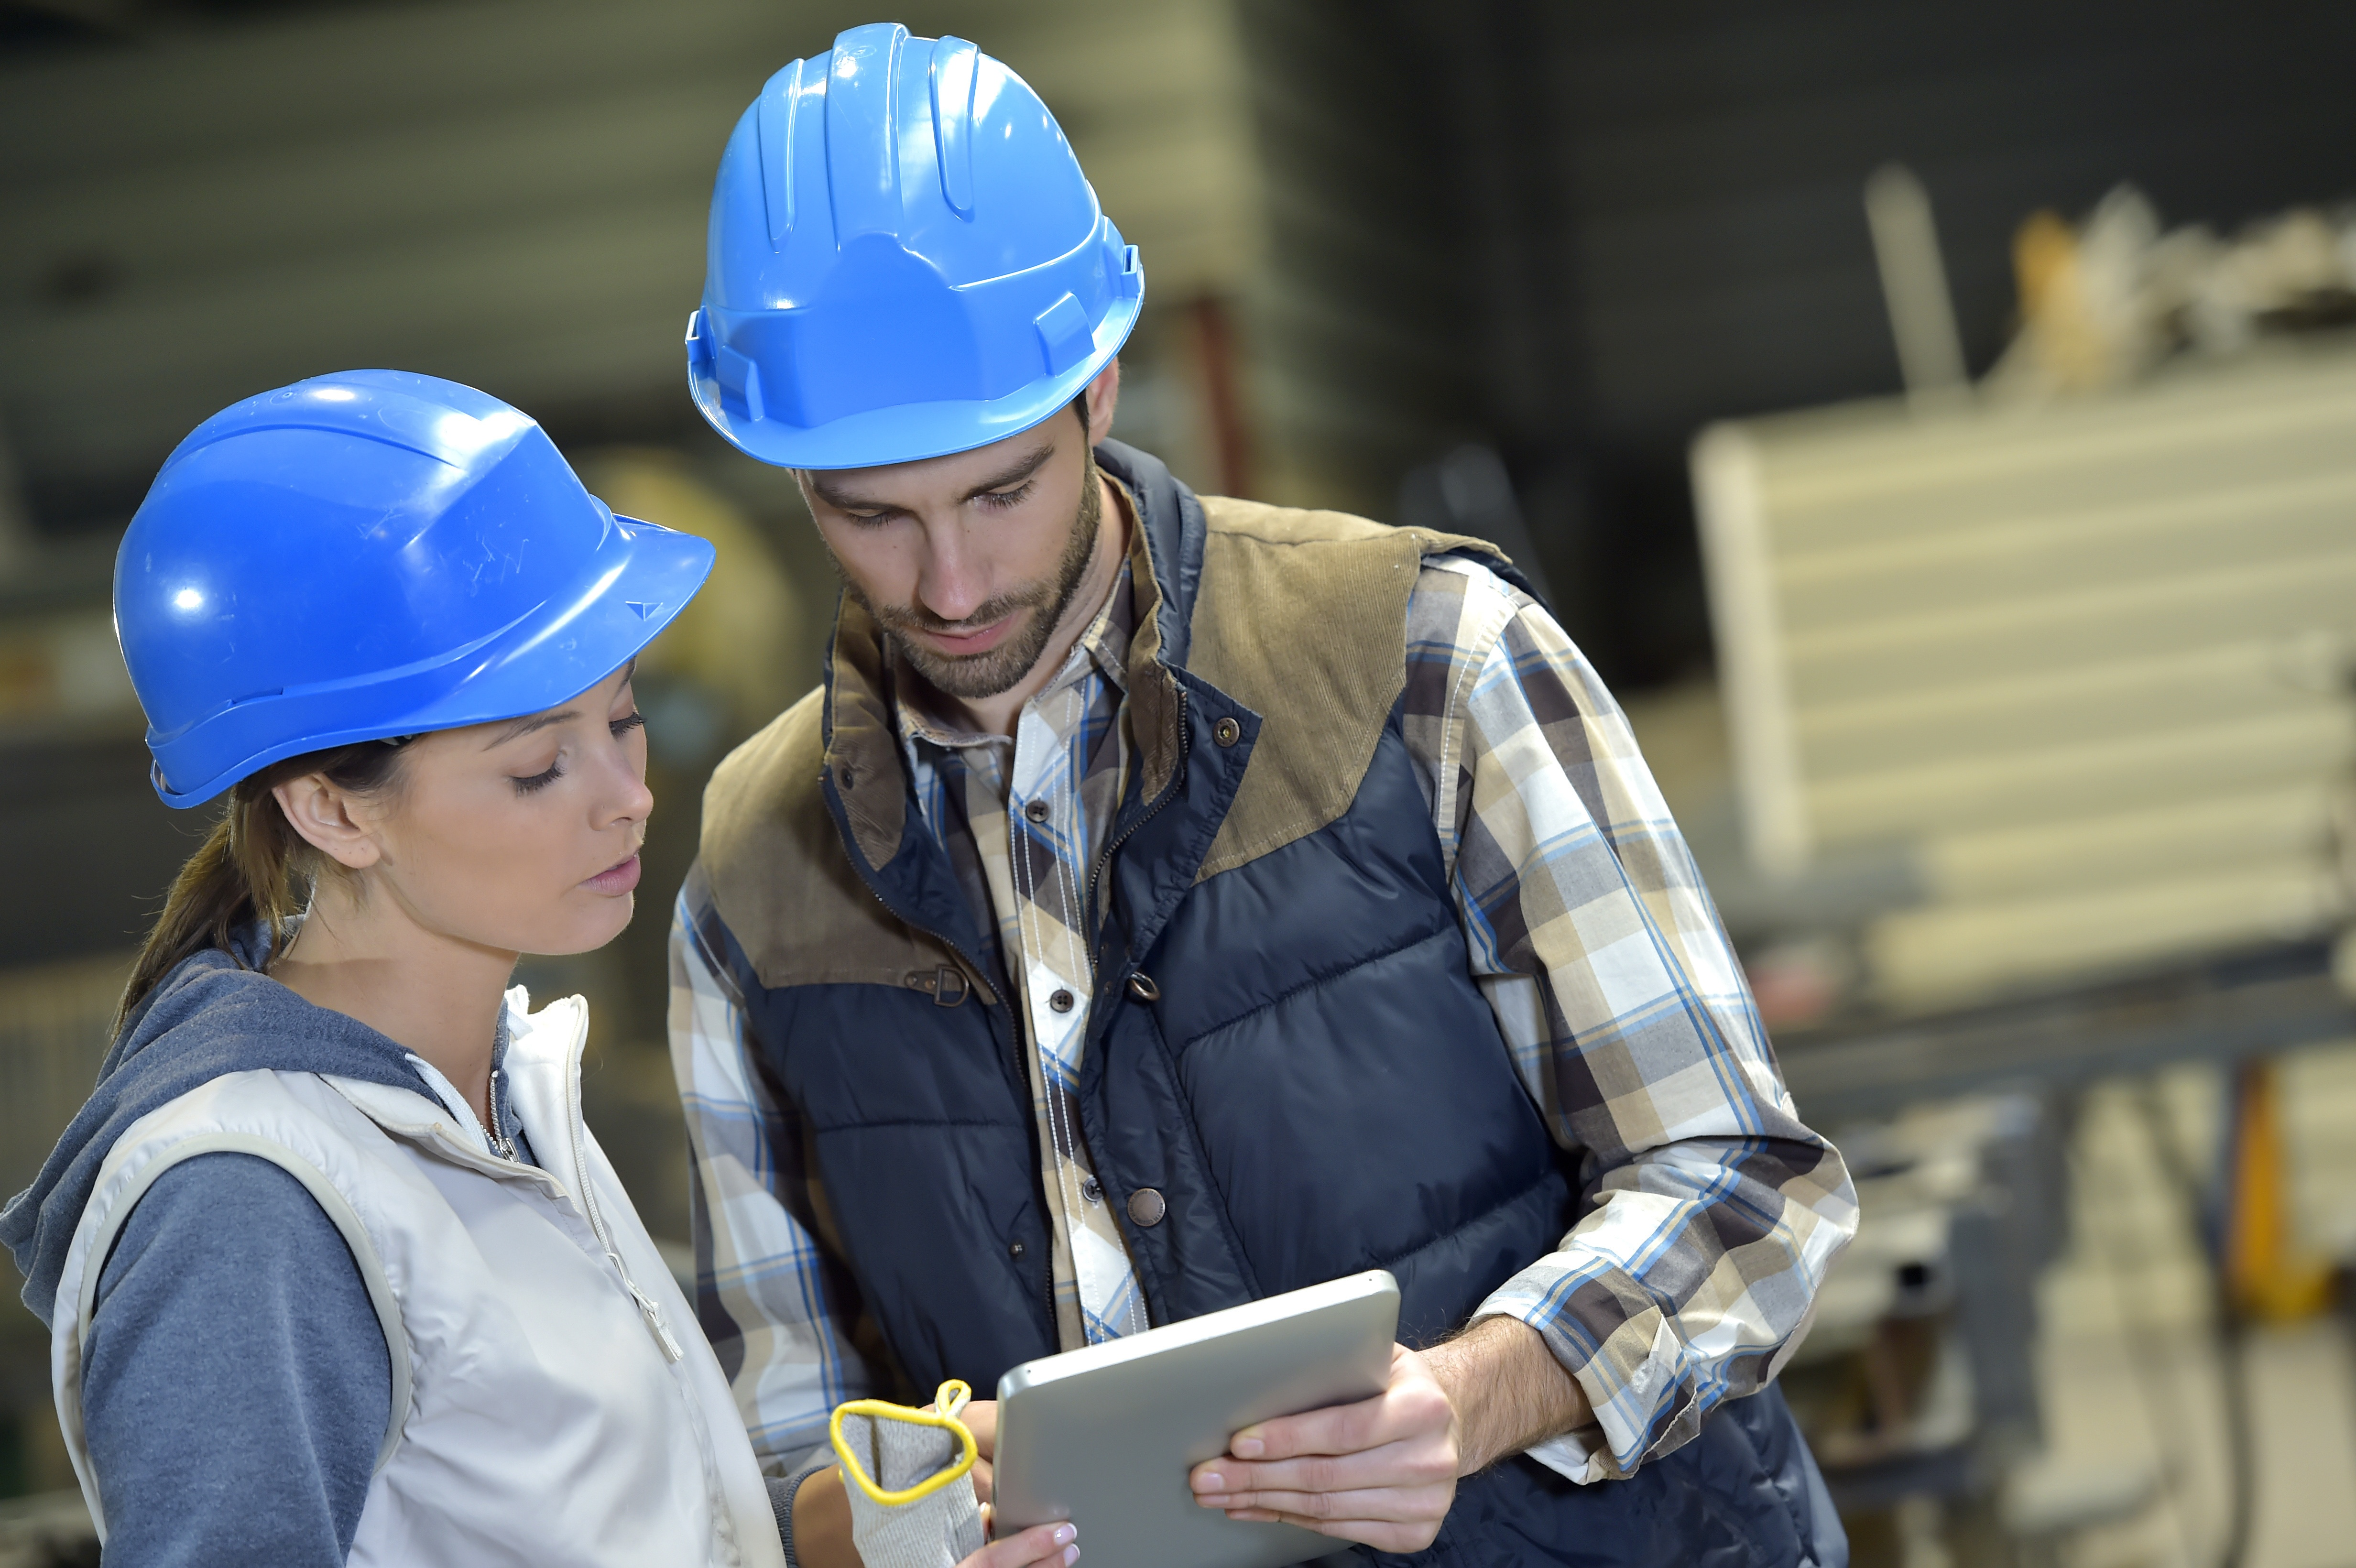 Identifying risks using Health & Safety software